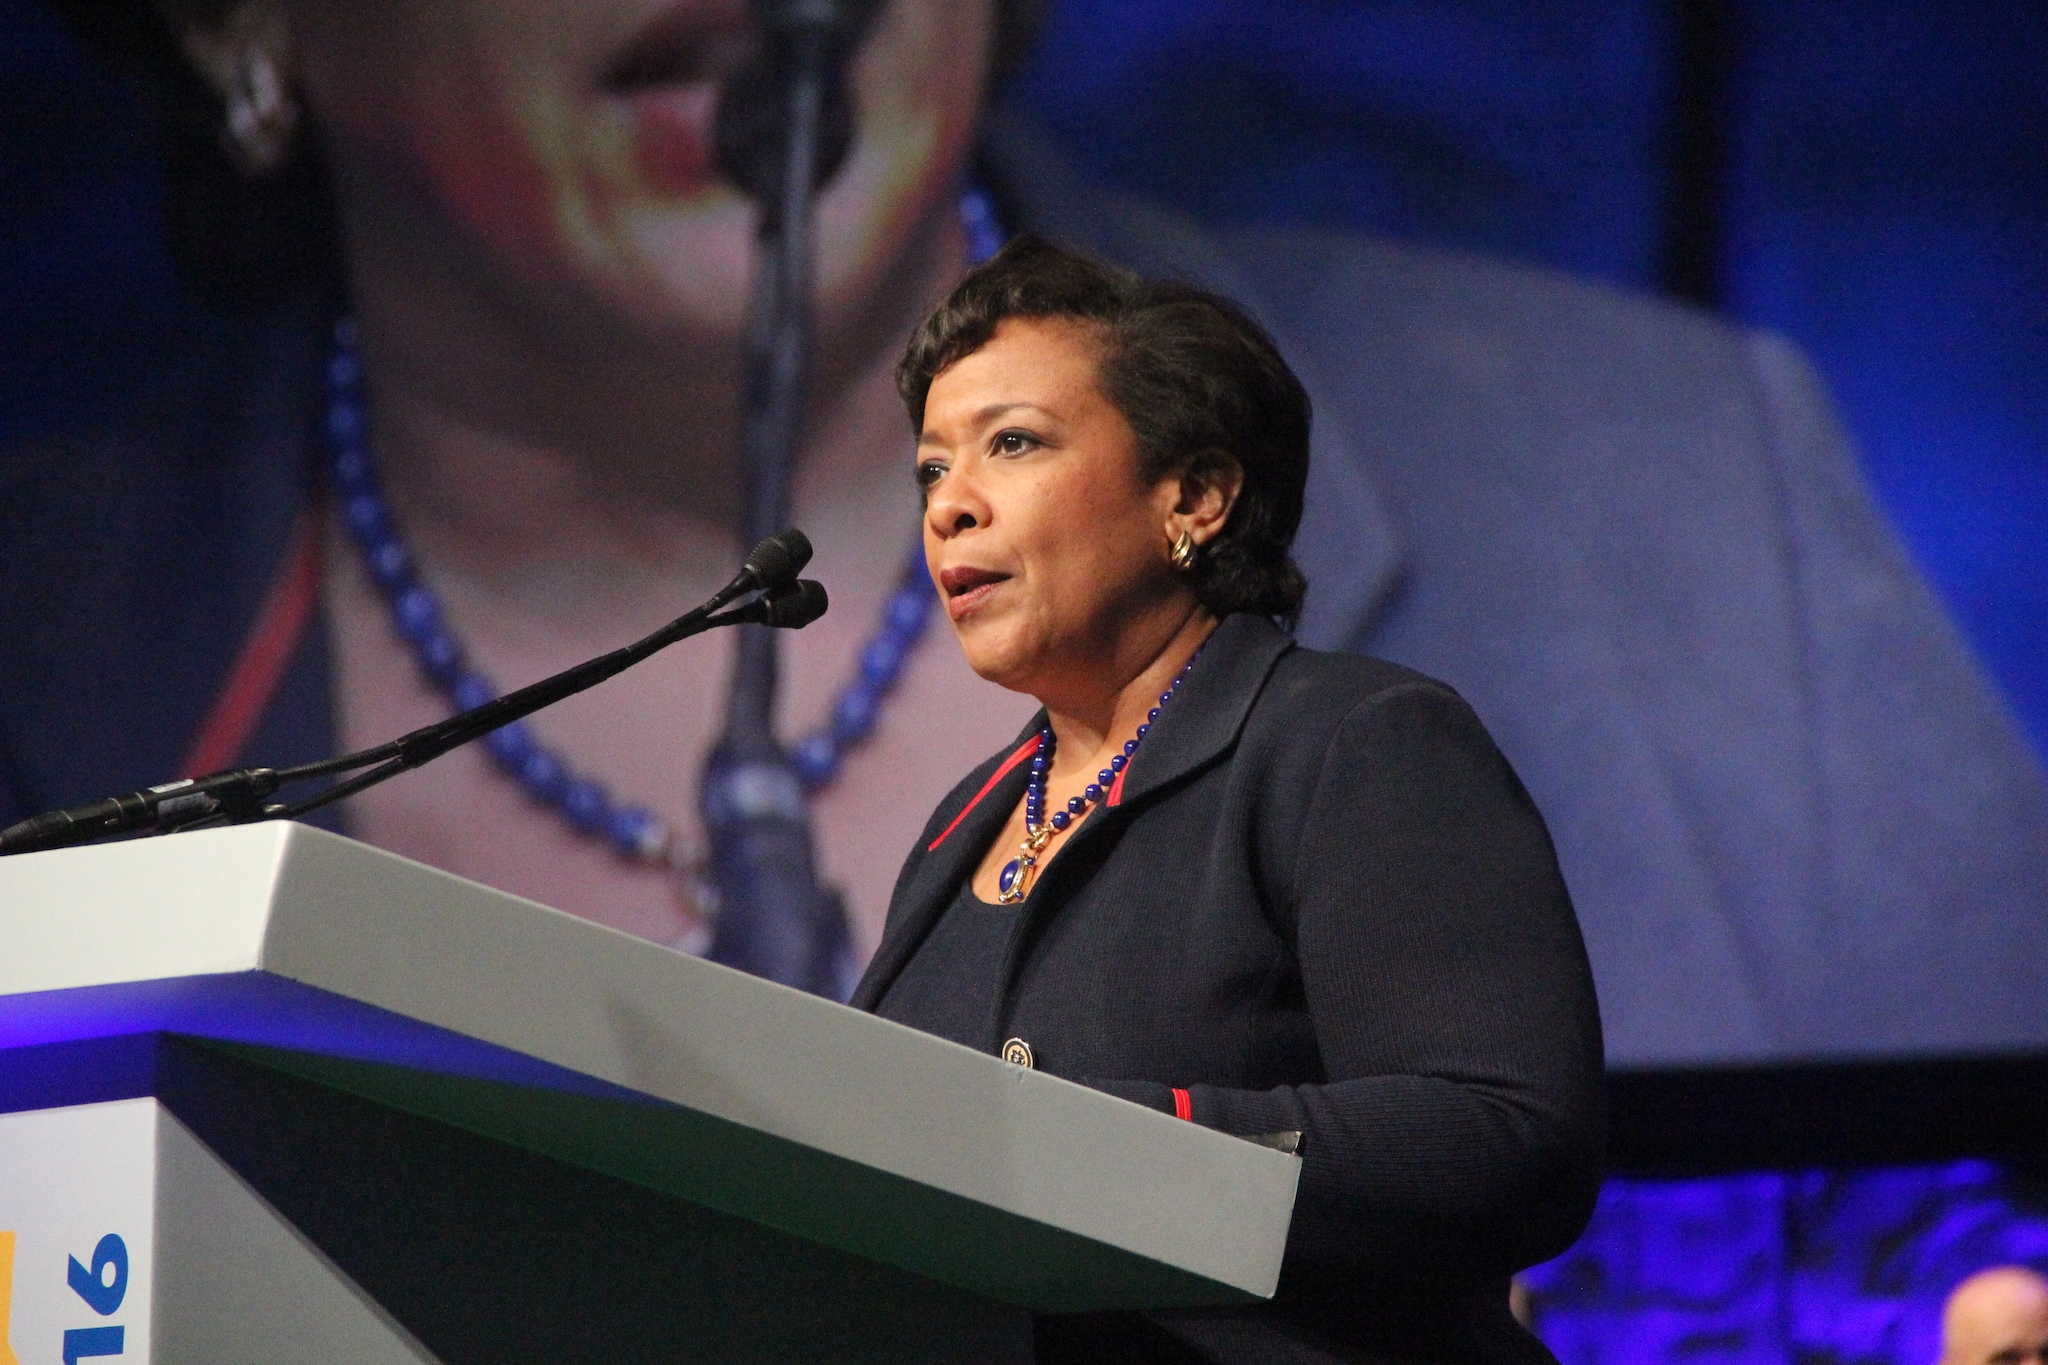 U.S. Attorney General Loretta Lynch addresses a crowd of several thousand law enforcement professionals and others during the National Association of Police Chiefs annual convention in San Diego Oct. 15-18, 2015. (Photo: Jared Morgan / Guns.com)